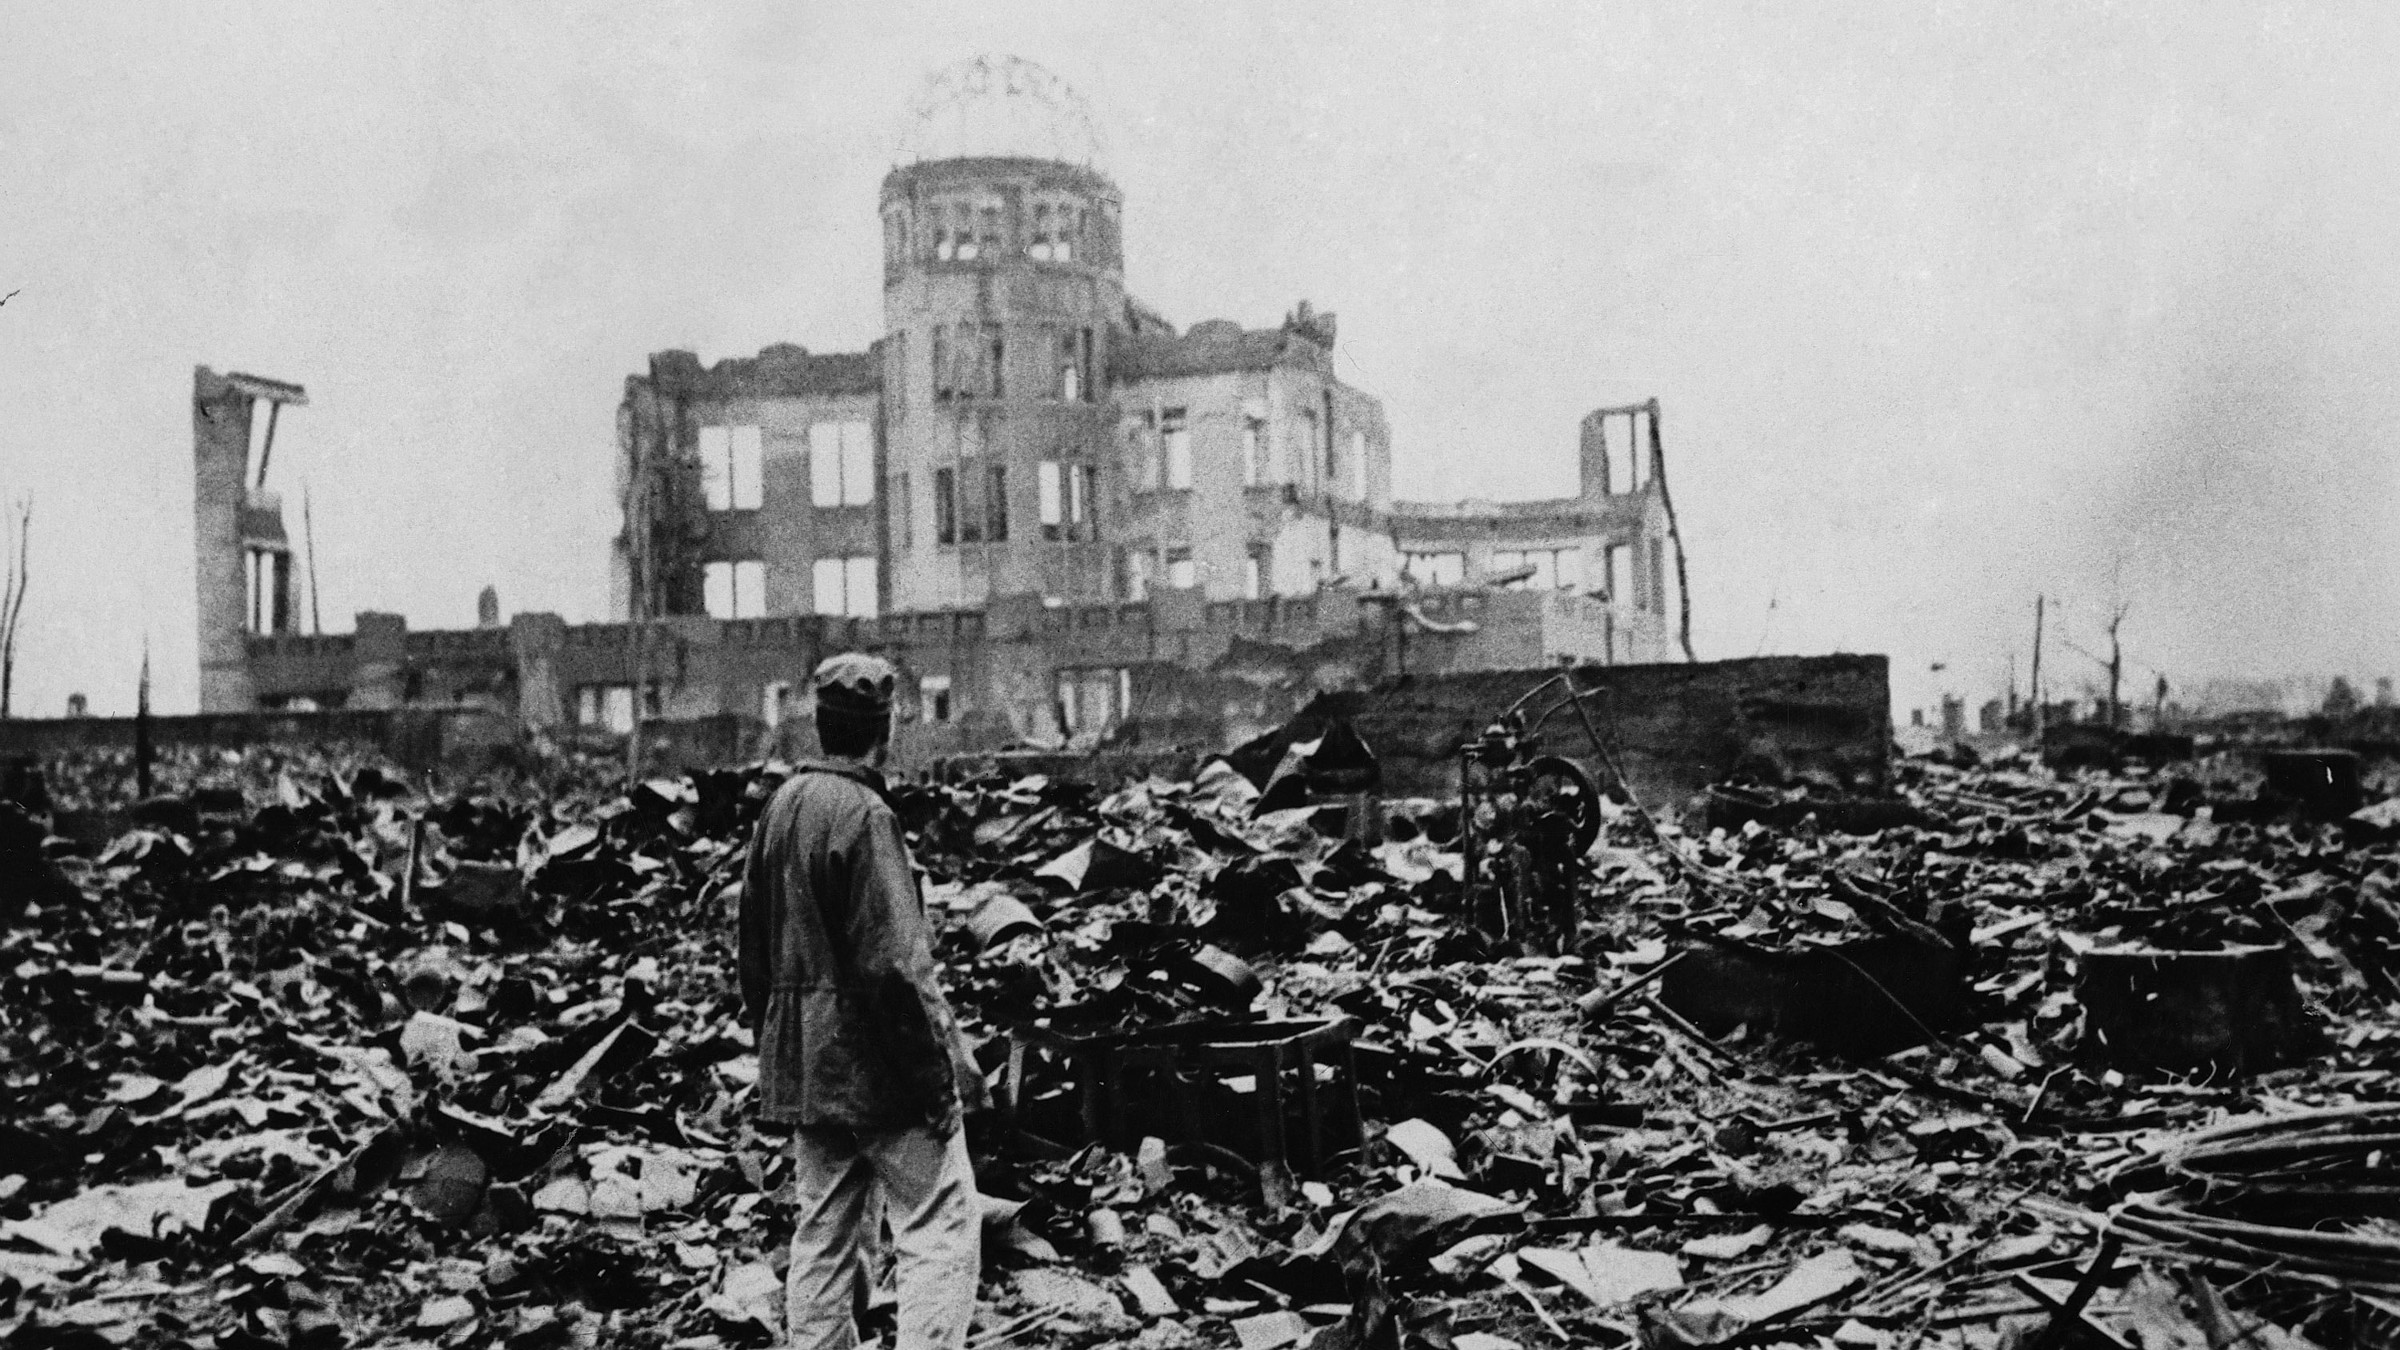 The expanse of ruins left the explosion of the atomic bomb on August 6, 1945 in Hiroshima, Japan.